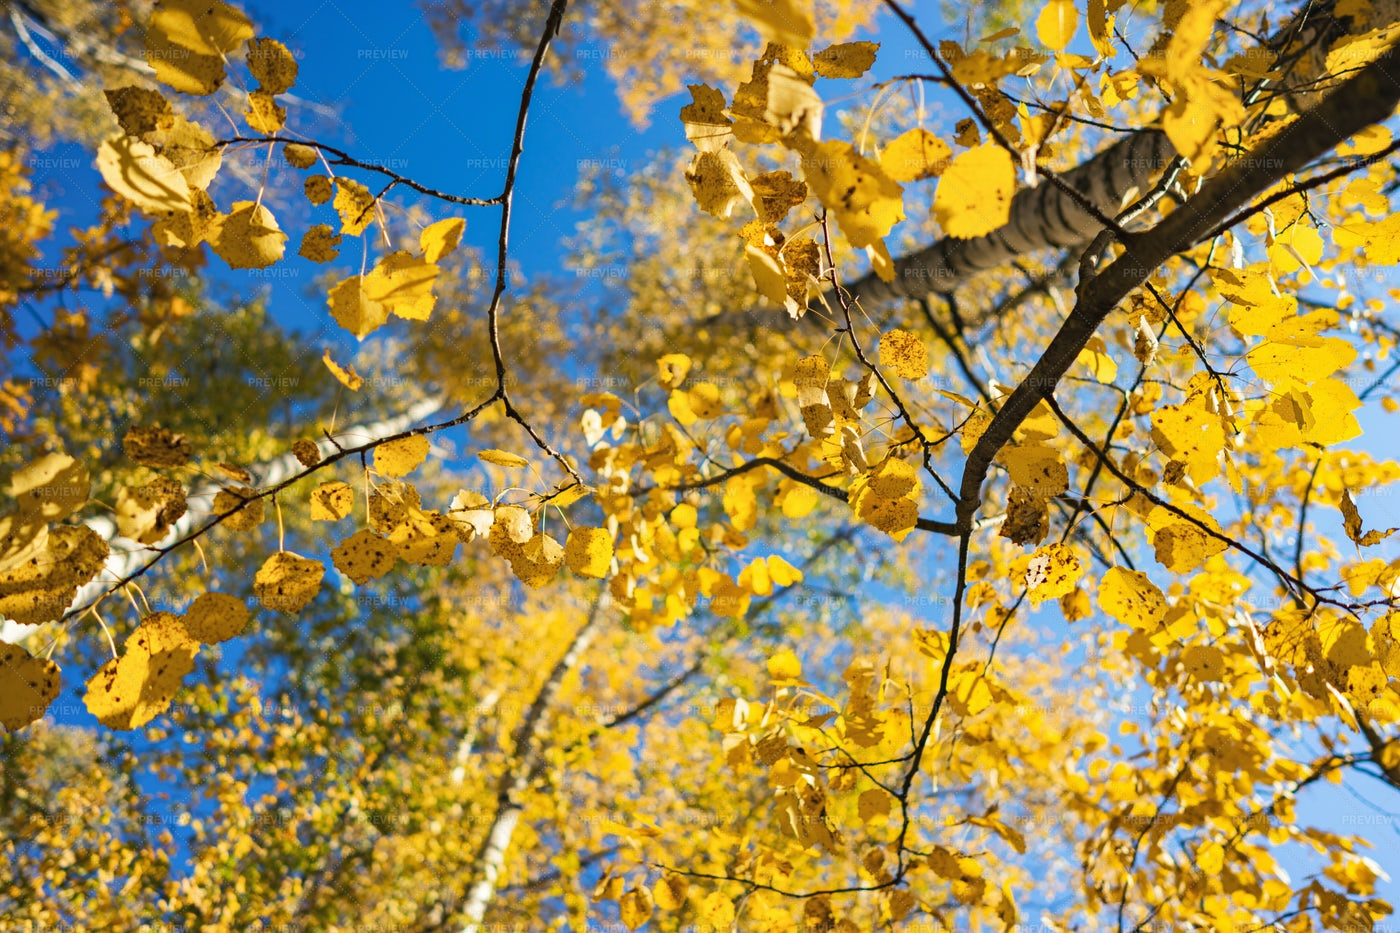 Autumnal Leaves On Trees: Stock Photos